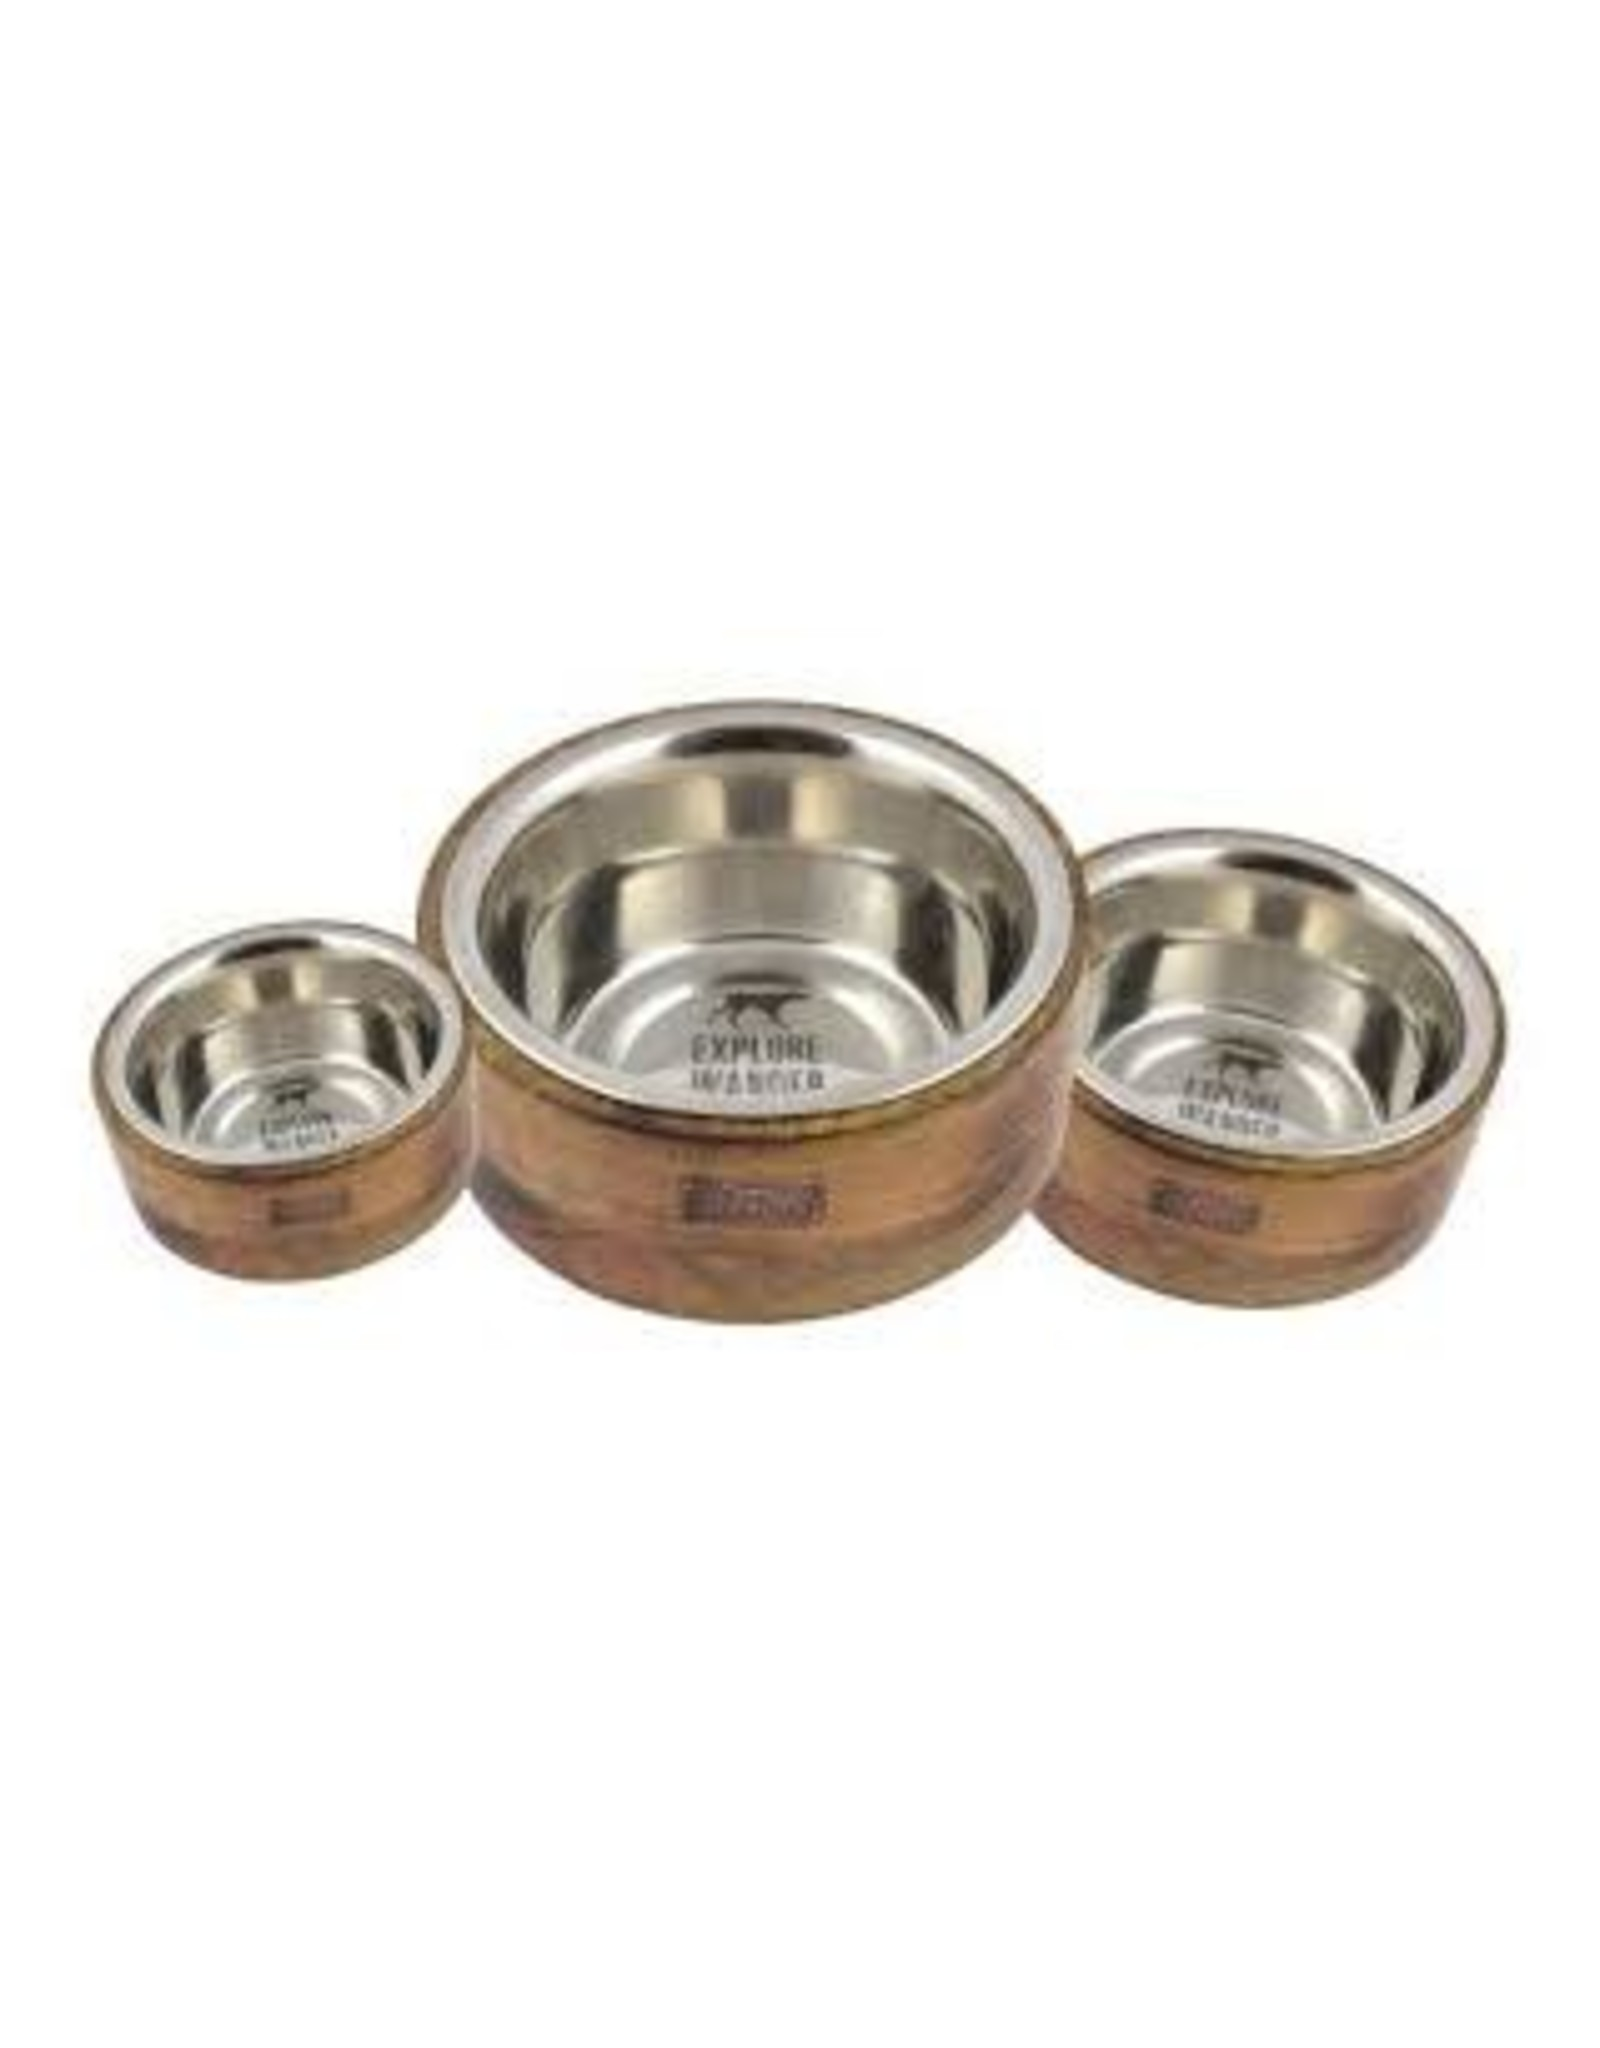 TALL TAILS TALLTAILS DOG BOWL STAINLESS WOOD 3 CUP